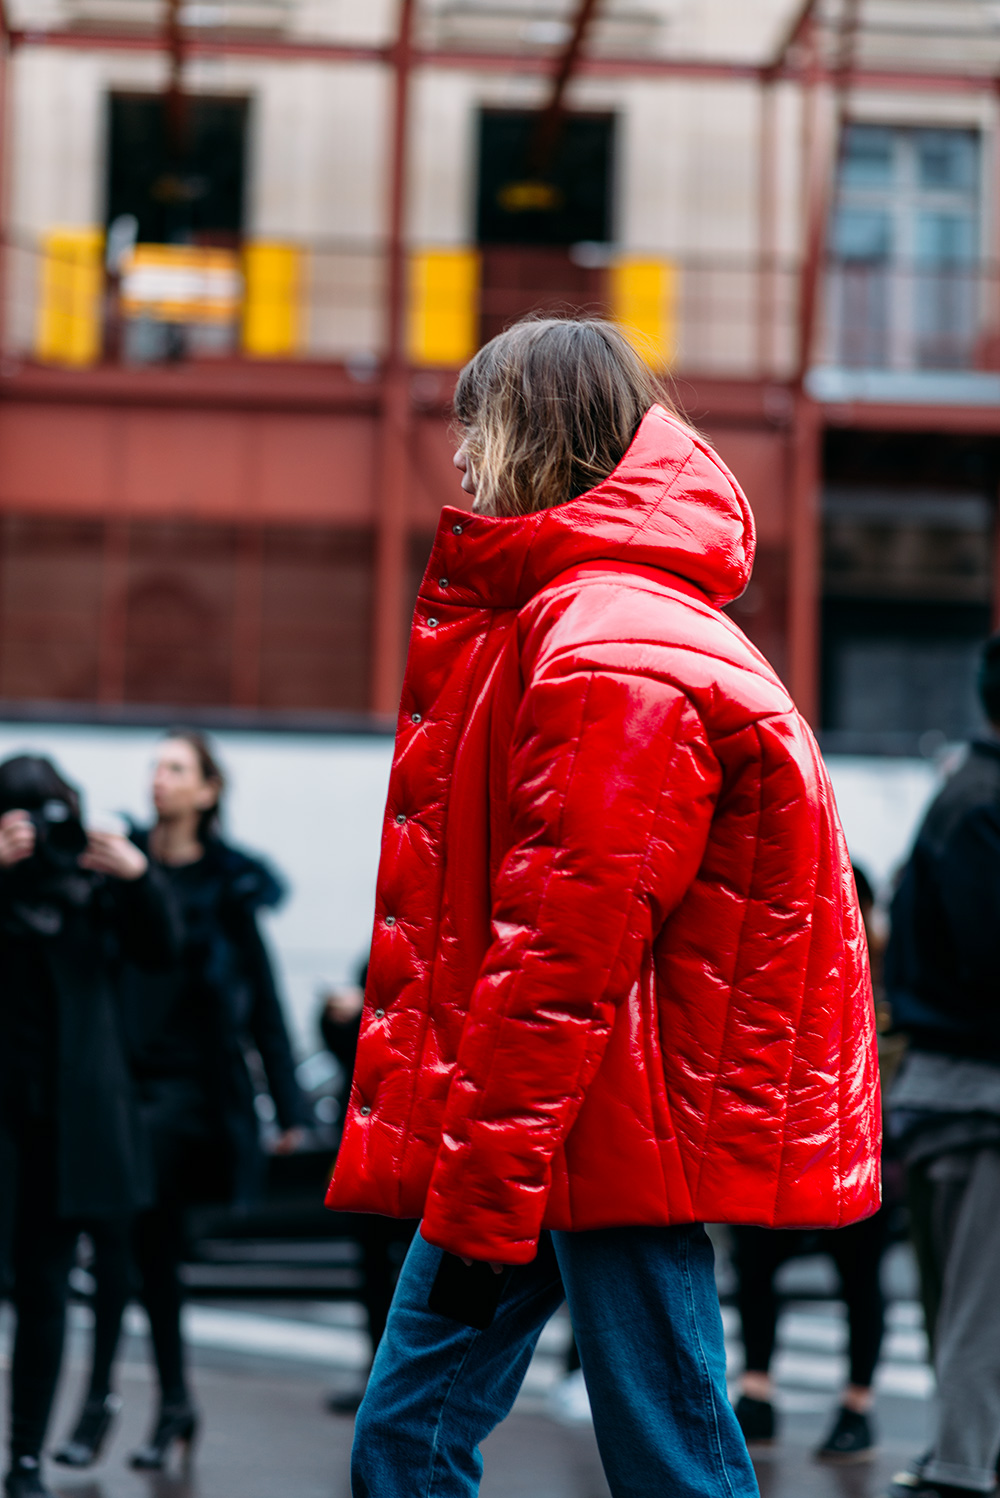 Paris Fashion Week Streetstyle by The Petticoat -Anya Ziourova Big Red Coat Paris PFW